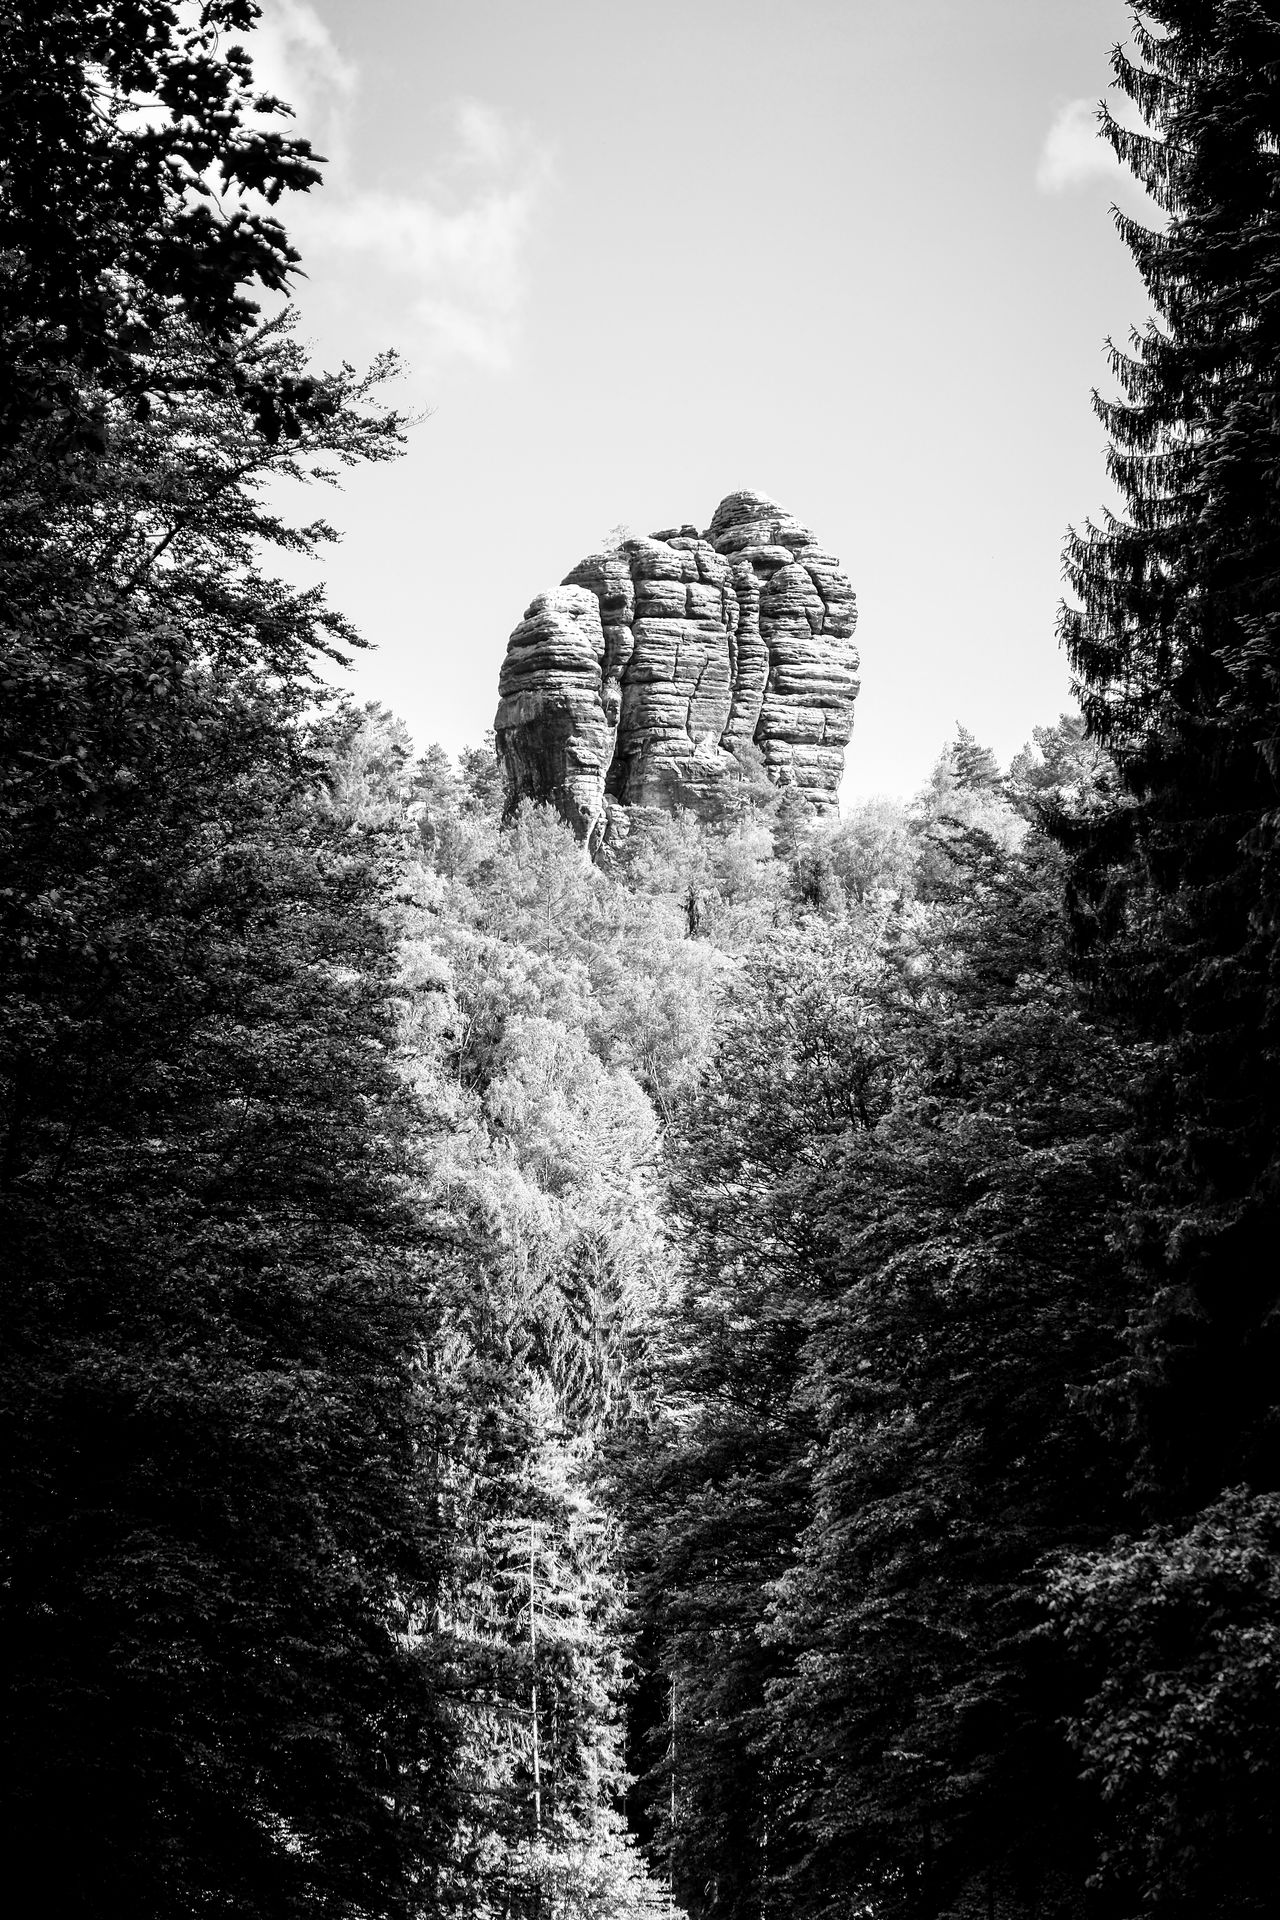 Beauty In Nature Check This Out Climbing Climbing A Mountain Exceptional Photographs Eye4black&white  Eye4photography  EyeEm Masterclass EyeEm Nature Lover Home In The Woods Isolation Monochromatic Monochrome Nature Outdoors Rathen Rock Sandstone Saxon Switzerland Single Sächsische Schweiz Sächsischeschweiz The Great Outdoors - 2016 EyeEm Awards The Great Outdoors With Adobe